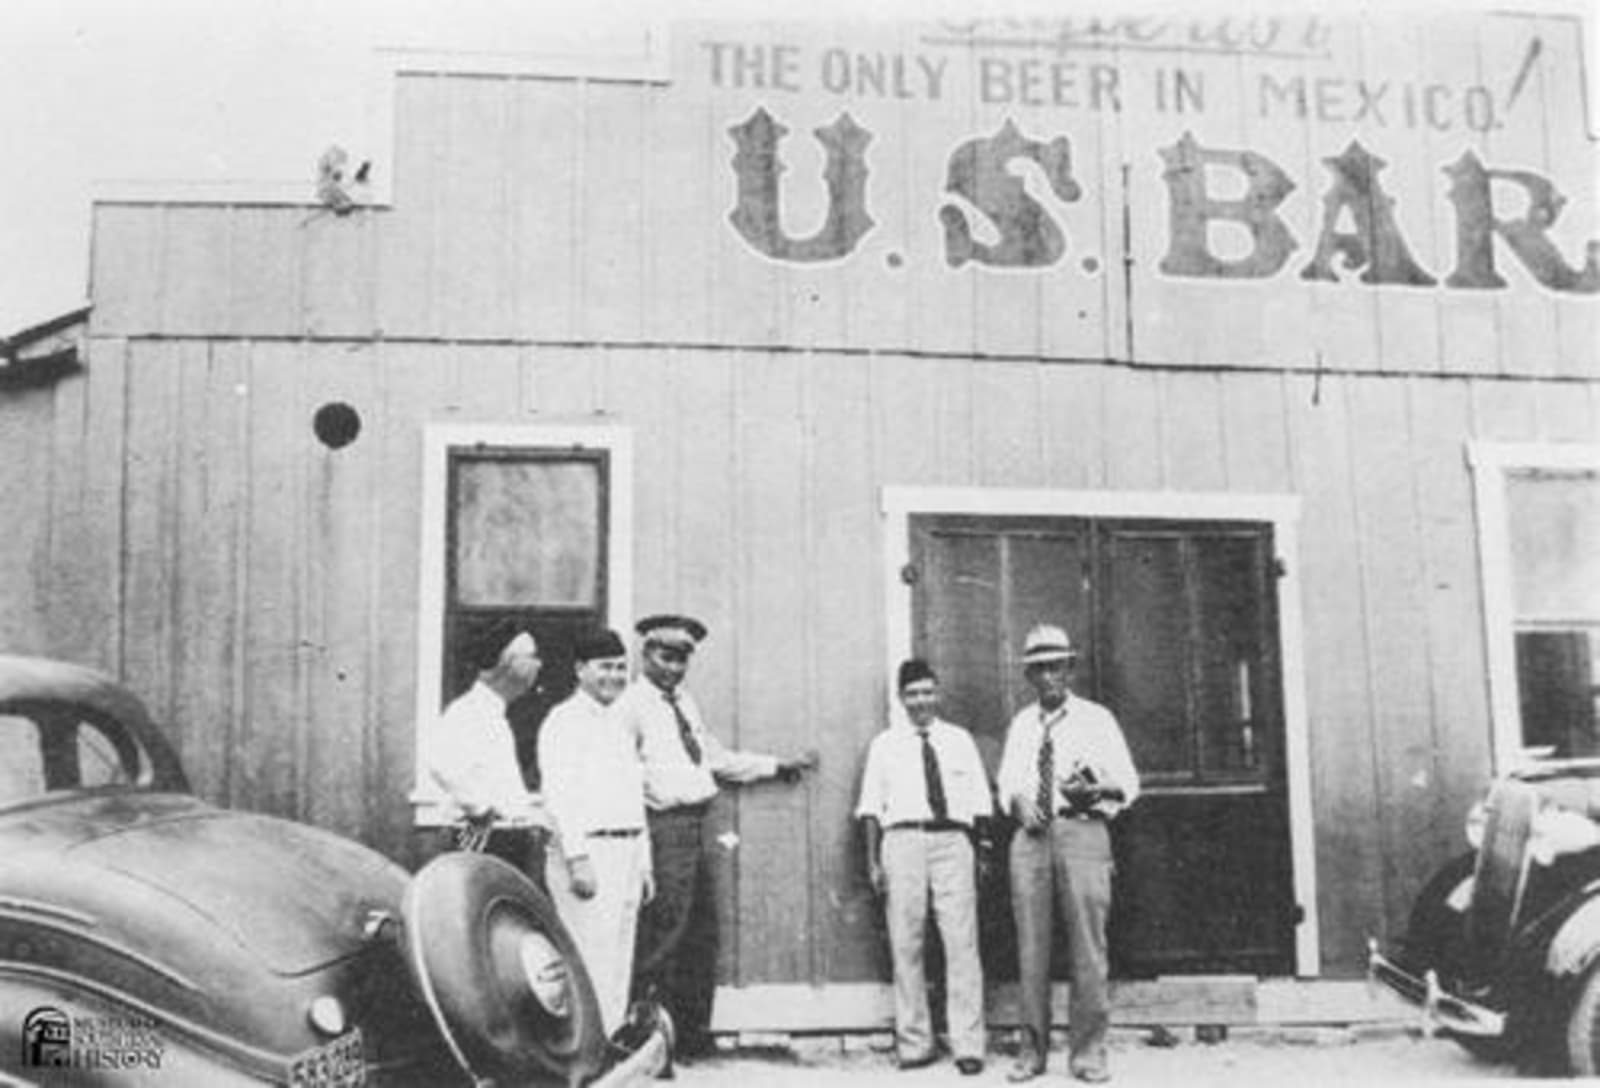 U.S. Bar in Reynosa, Mexico